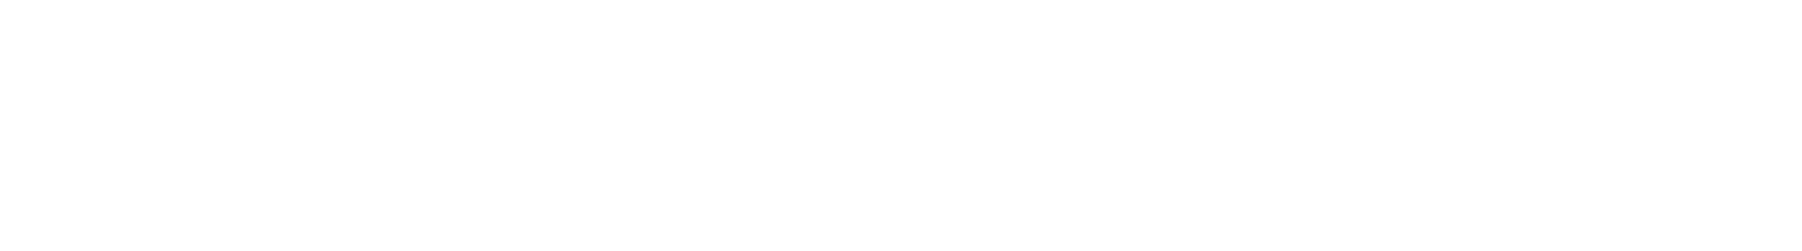 East West Partners Logo